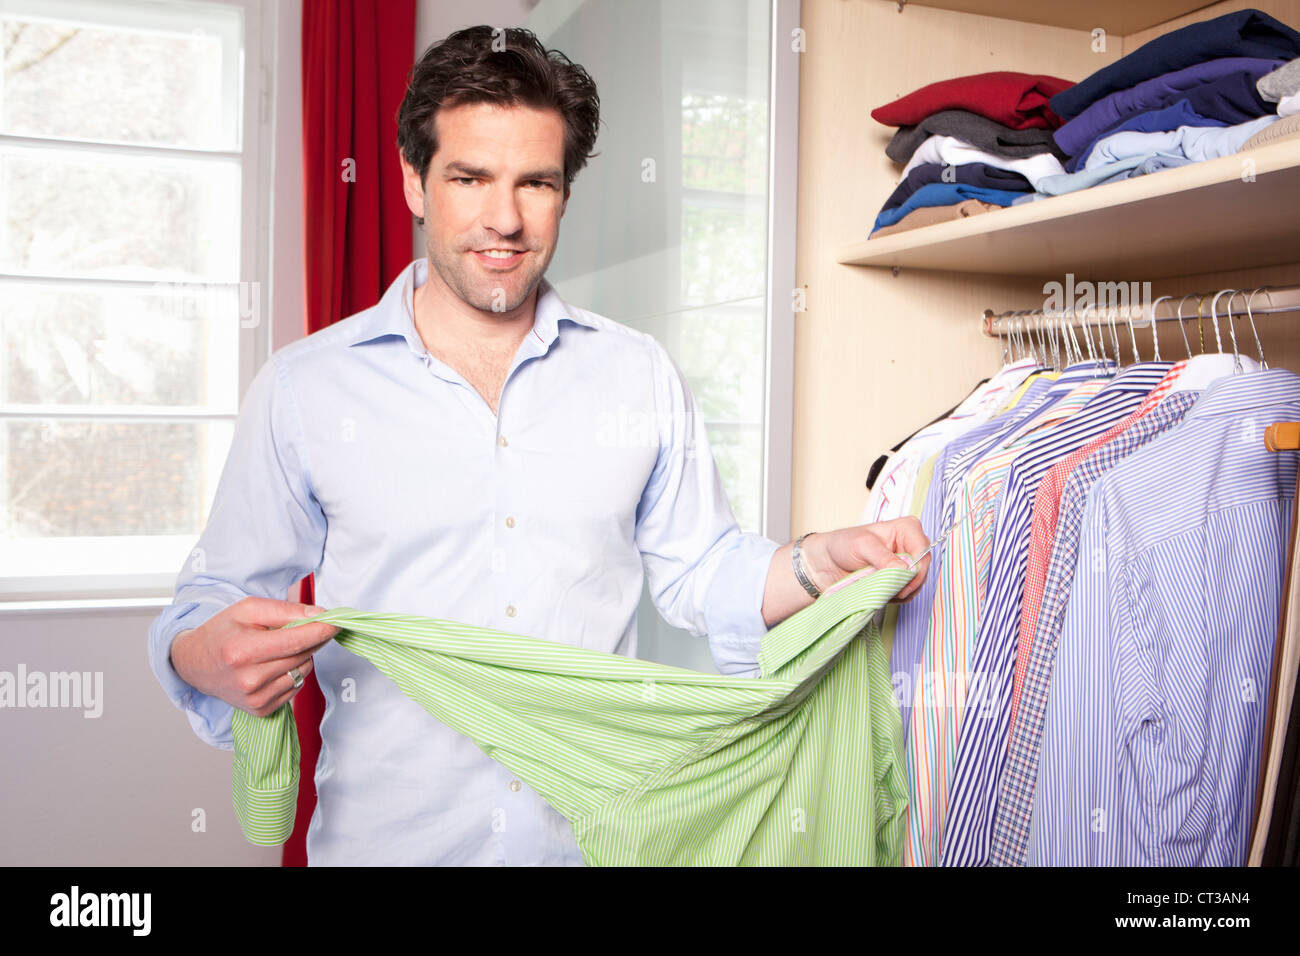 Man Hanging Up Clothes In Closet Stock Photo 49246768 Alamy